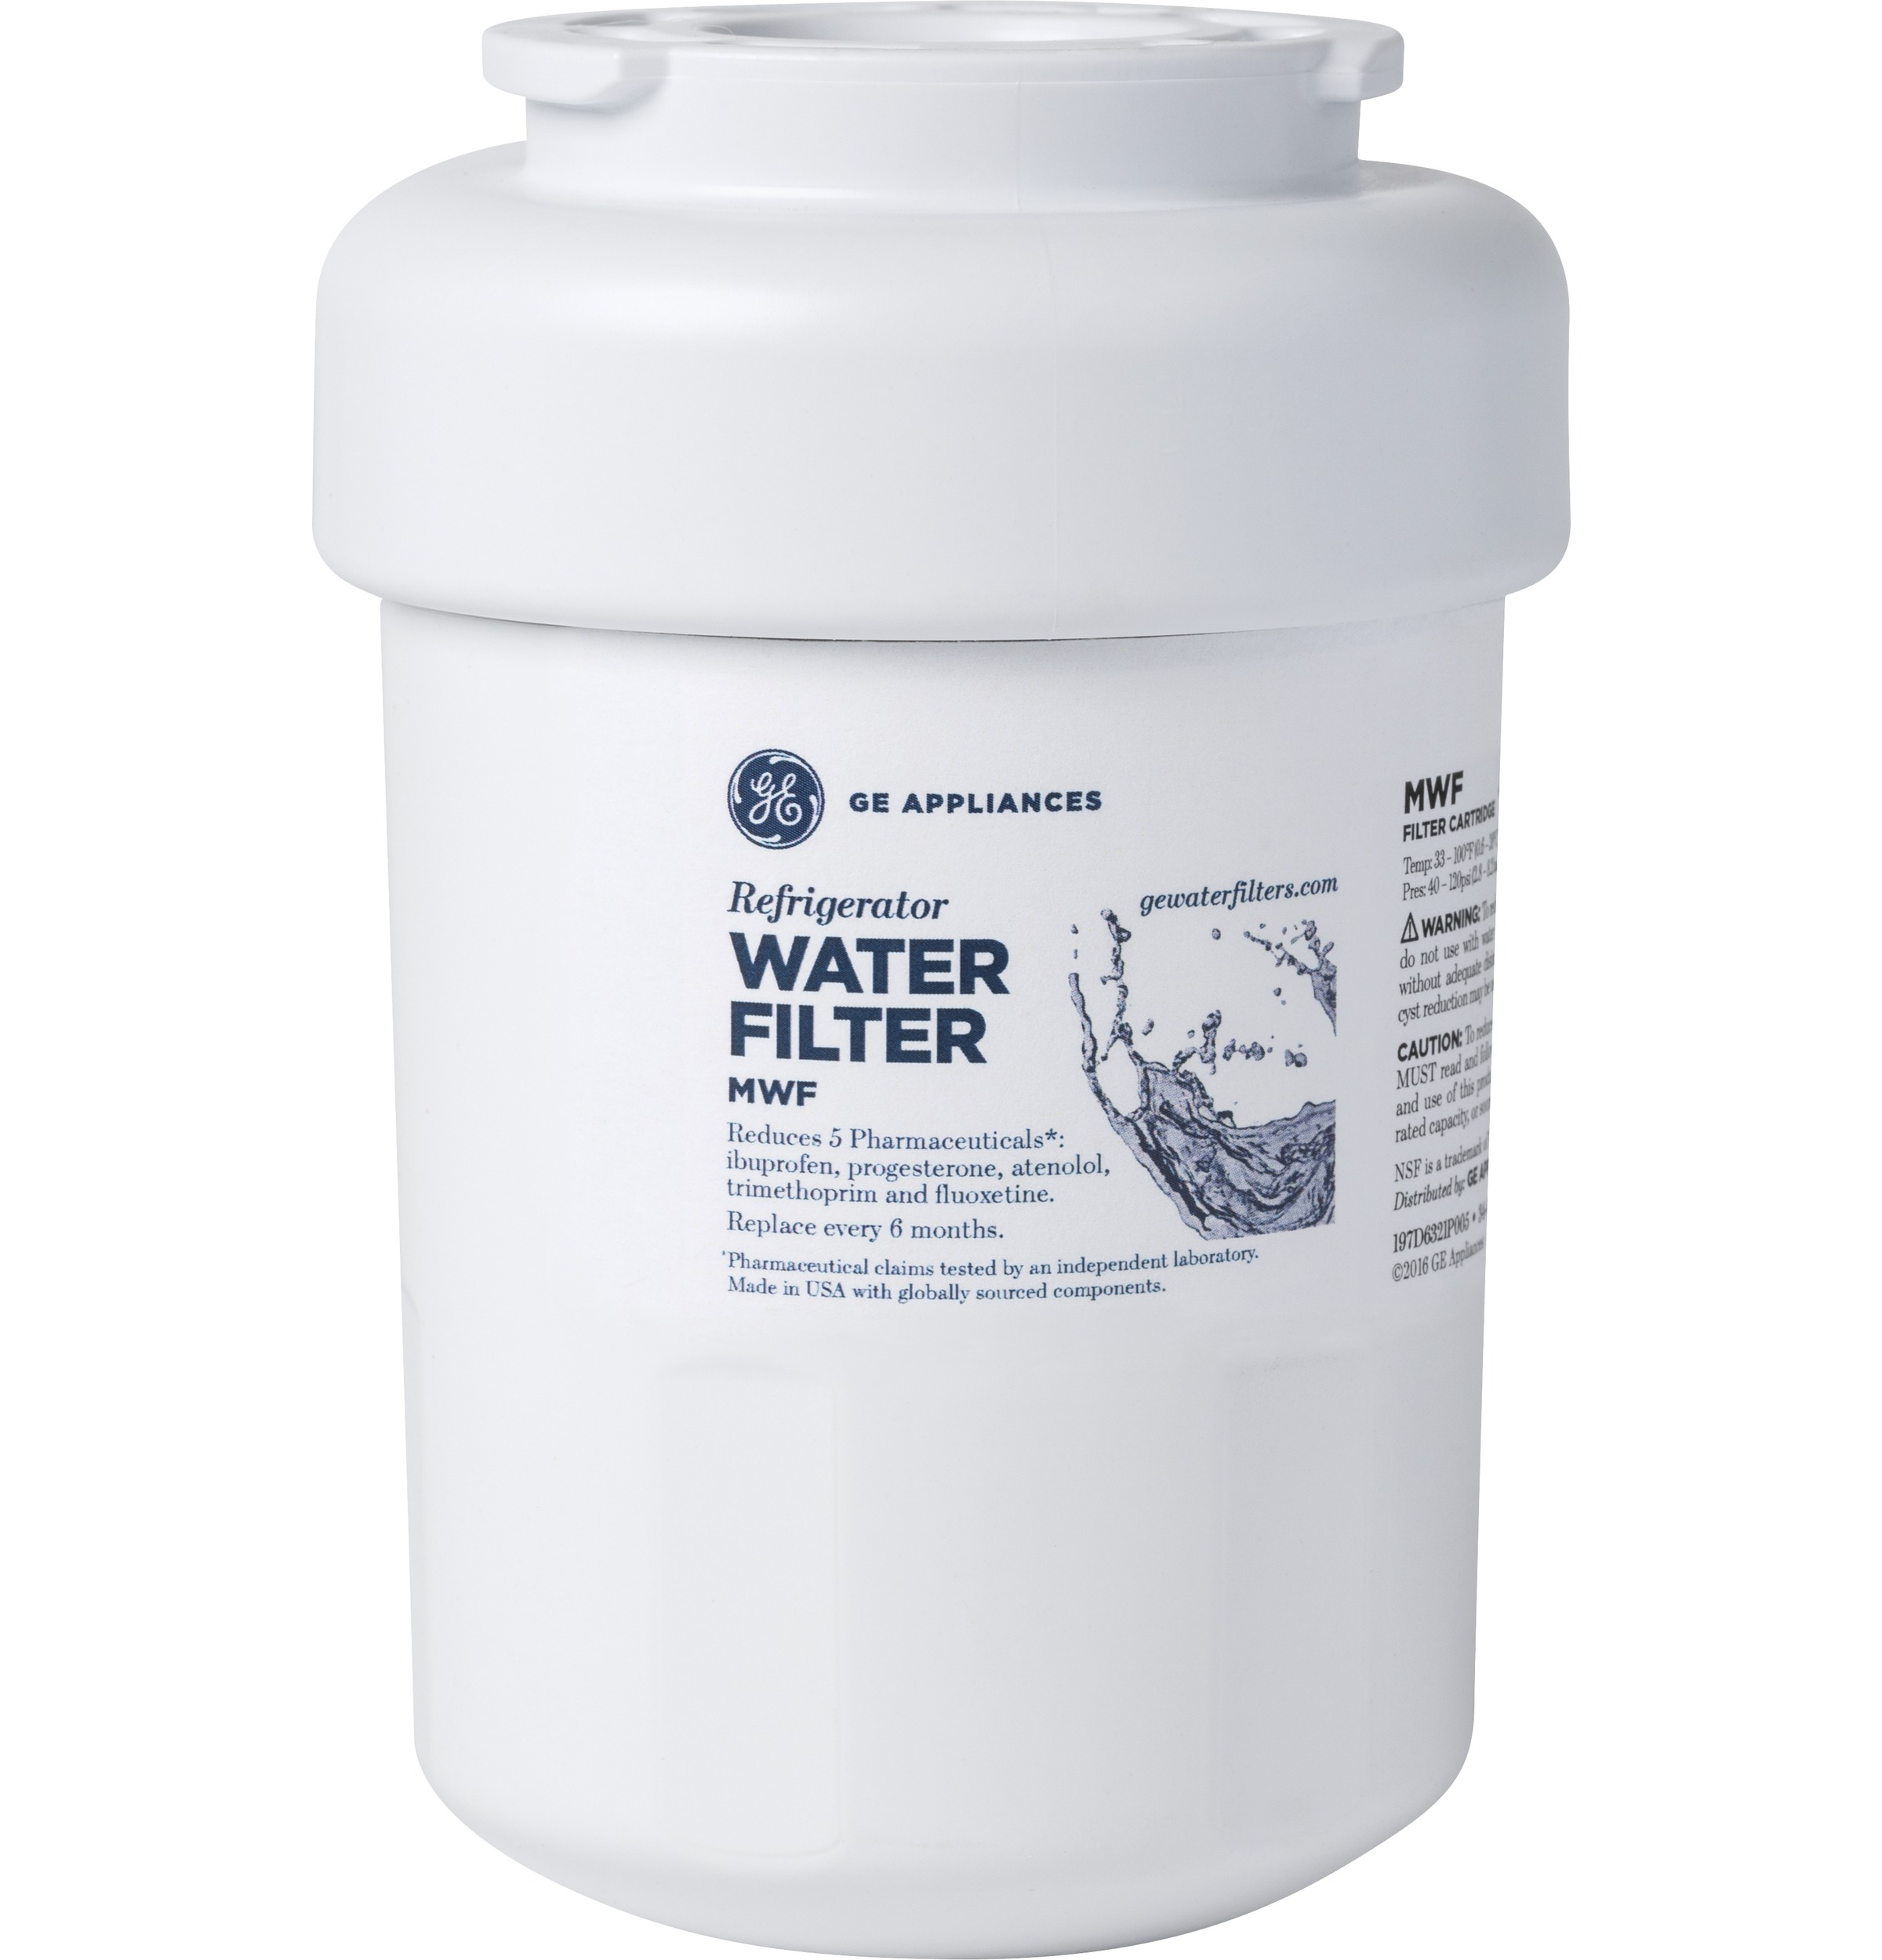 GE® Refrigerator Water Filter